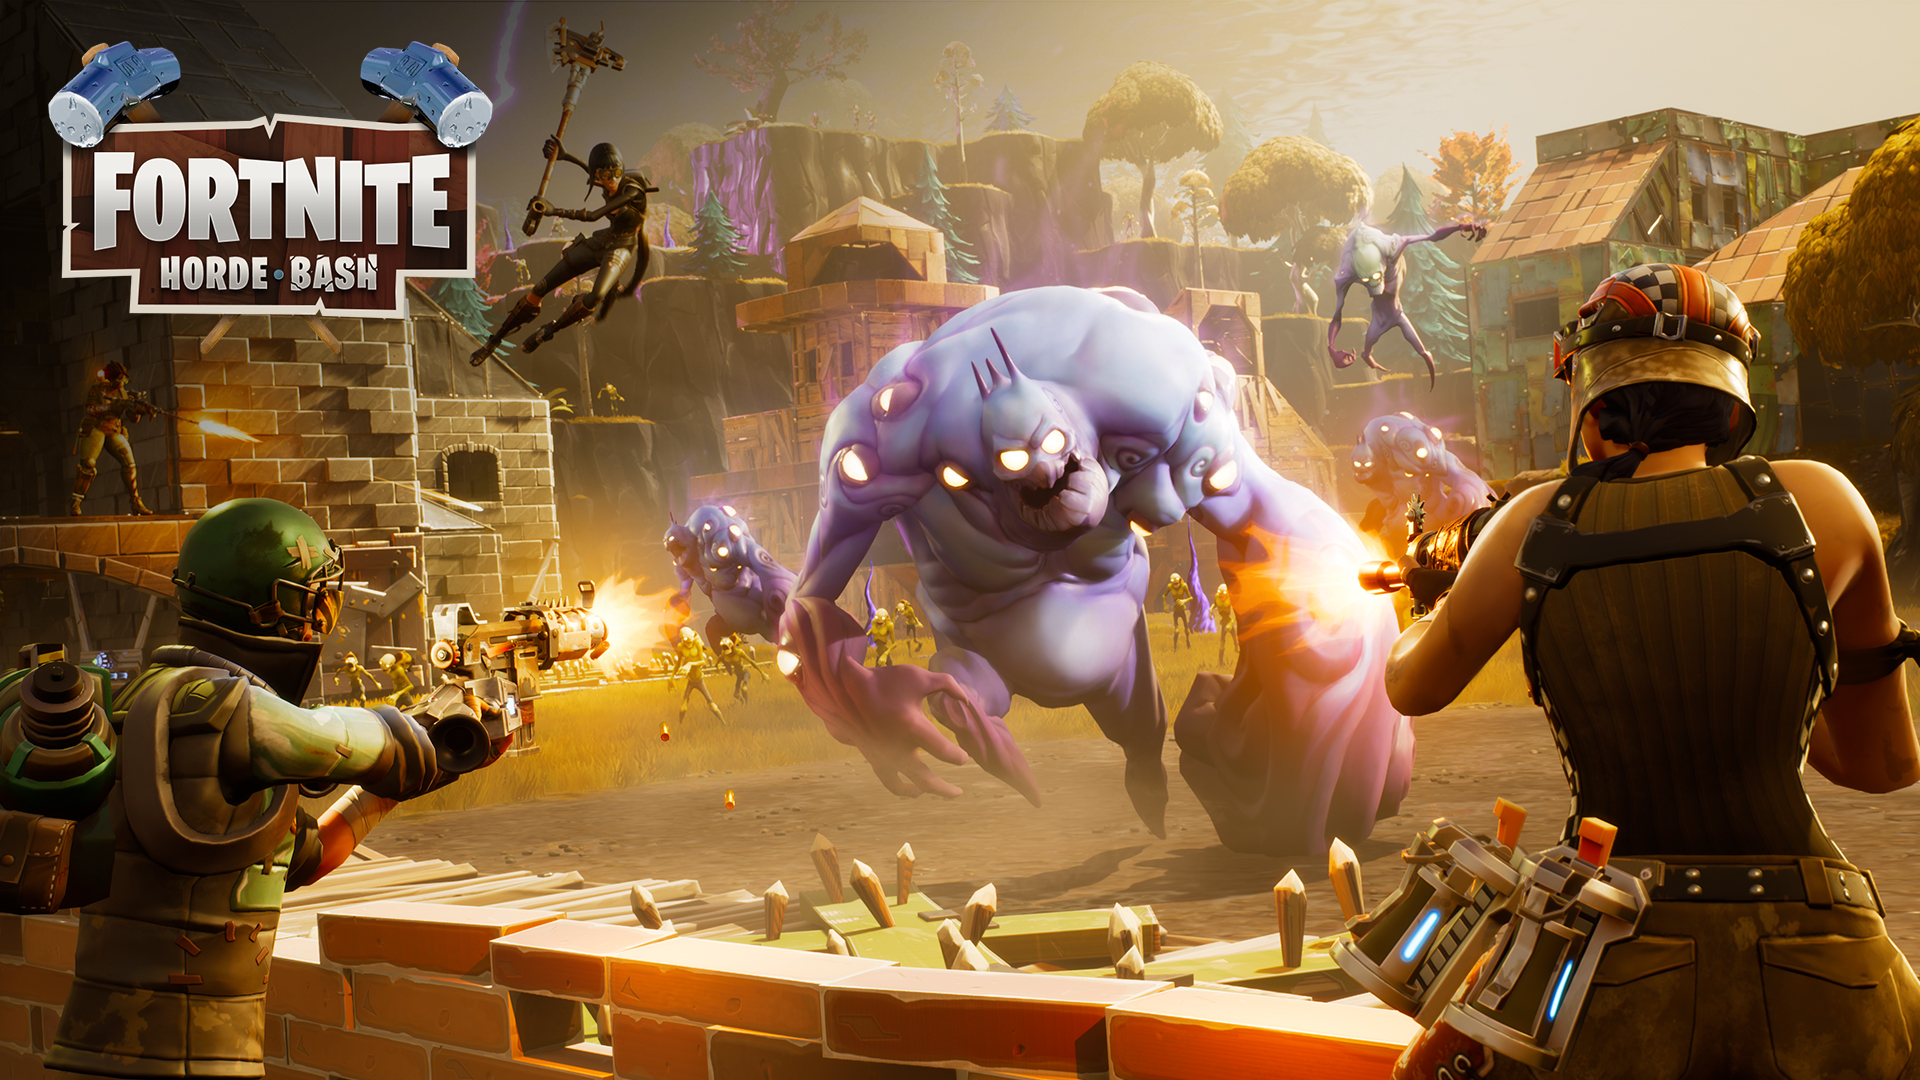 Epic games 39 fortnite - Fortnite save the world wallpaper ...